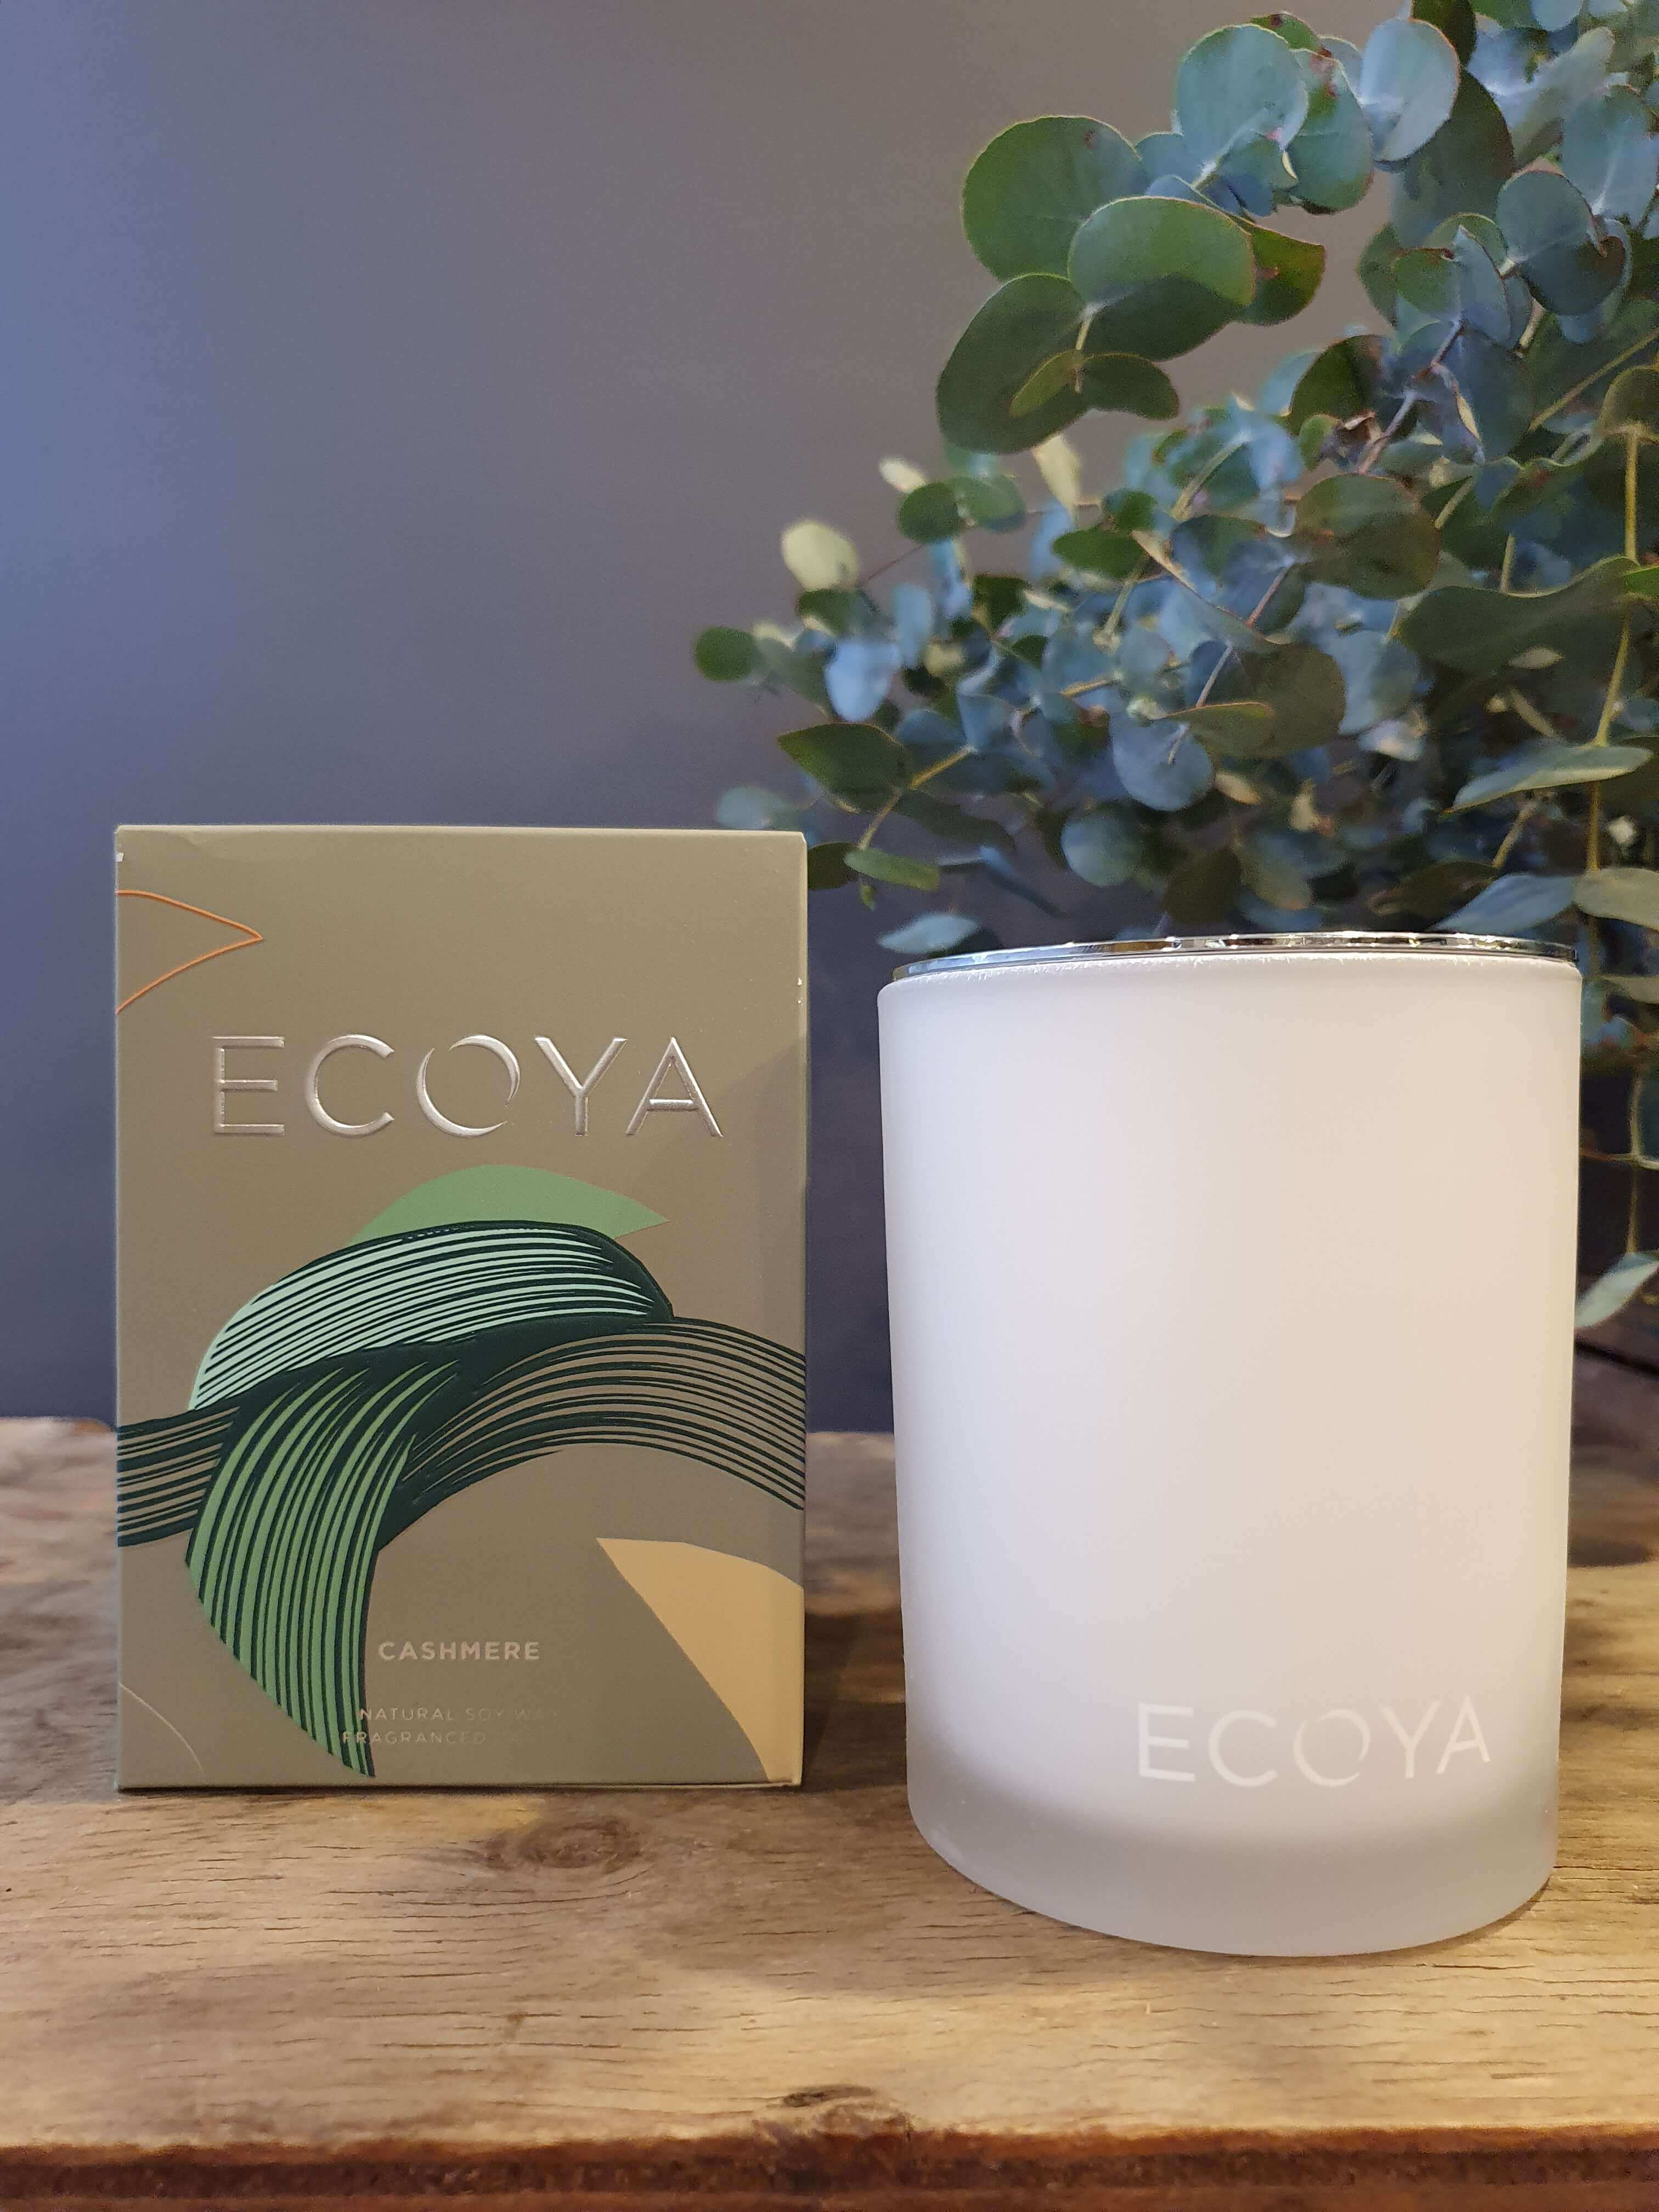 Ecoya Ltd Edition Cashmere